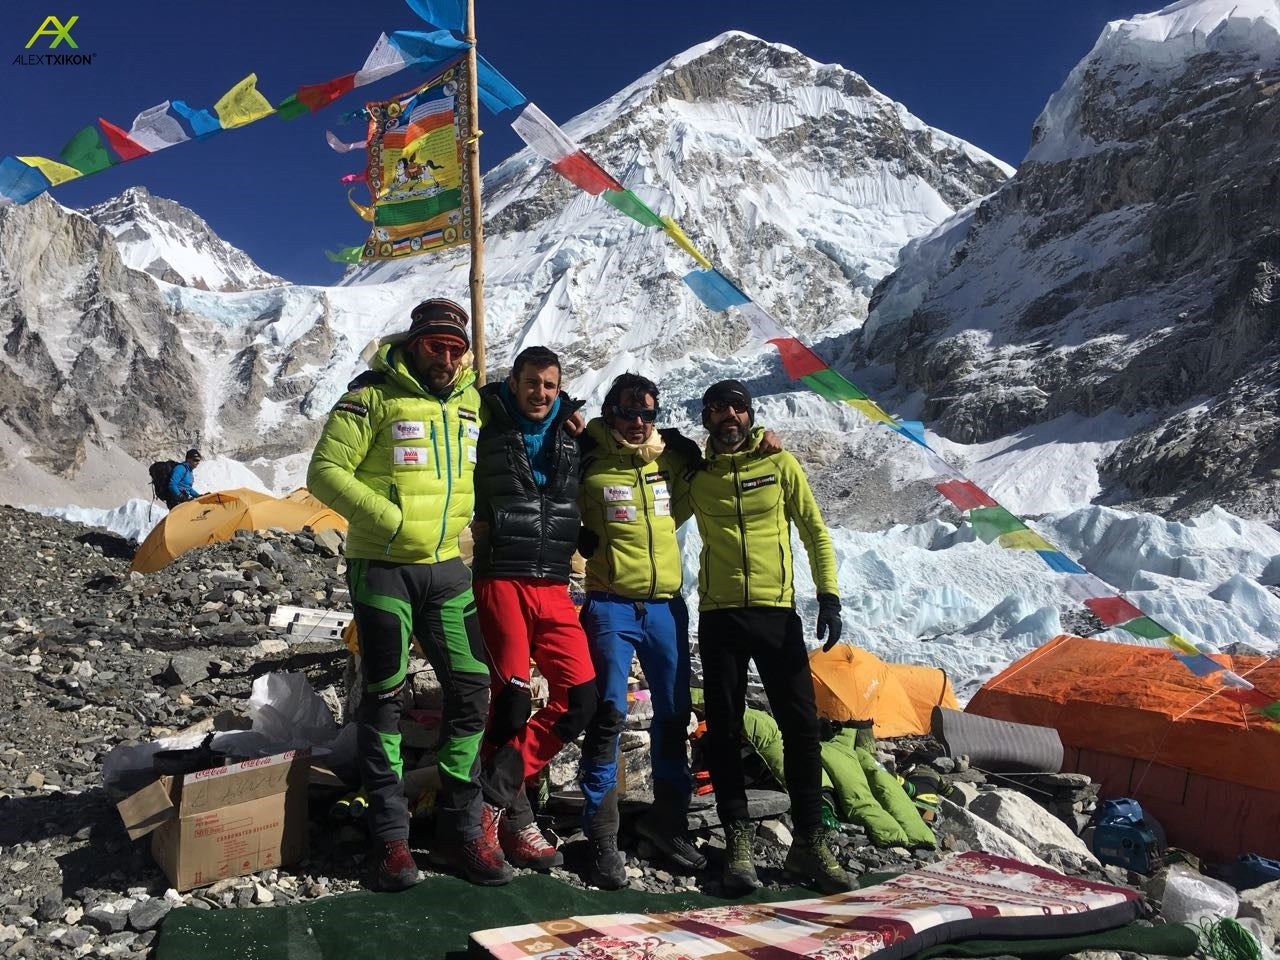 Txikon and other members of last winters expedition. Photo © Alex Txikon.